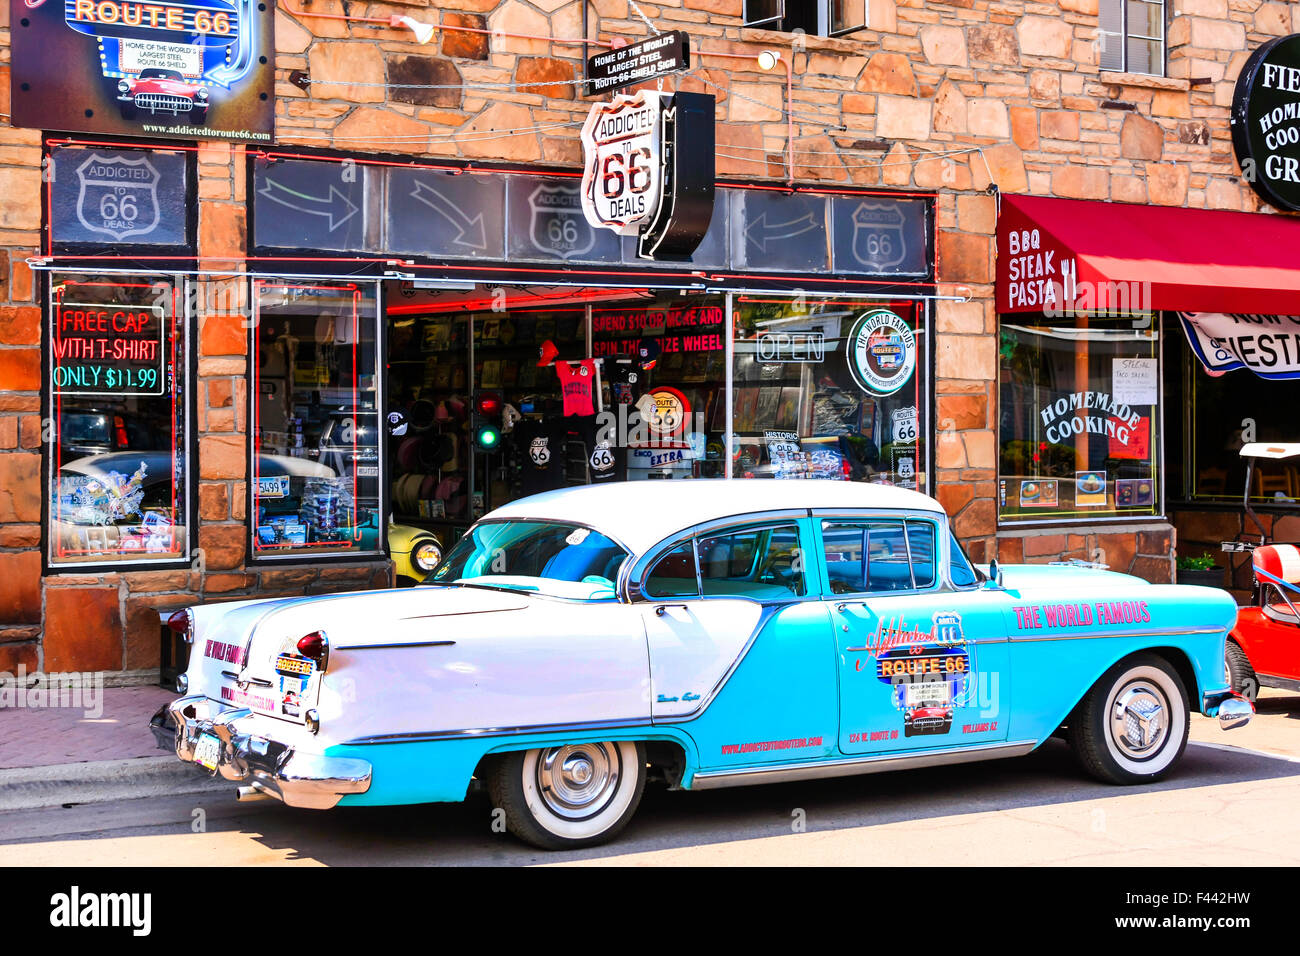 shop on route 66 stock photos & shop on route 66 stock images - alamy